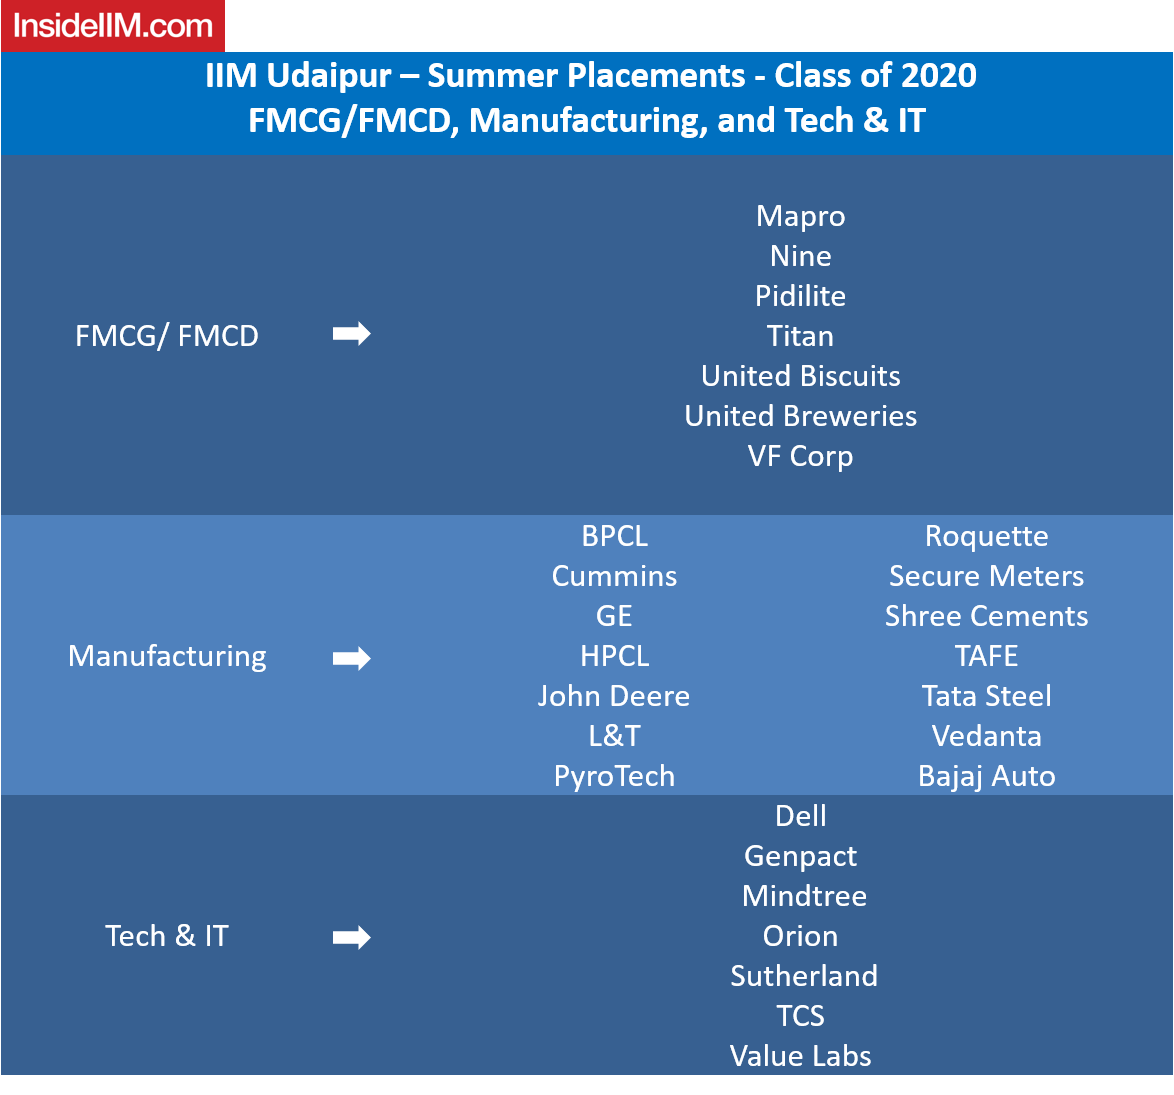 IIM Udaipur Placements 2019 - companies: FMCG/FMCD, Manufacturing, Tech and IT